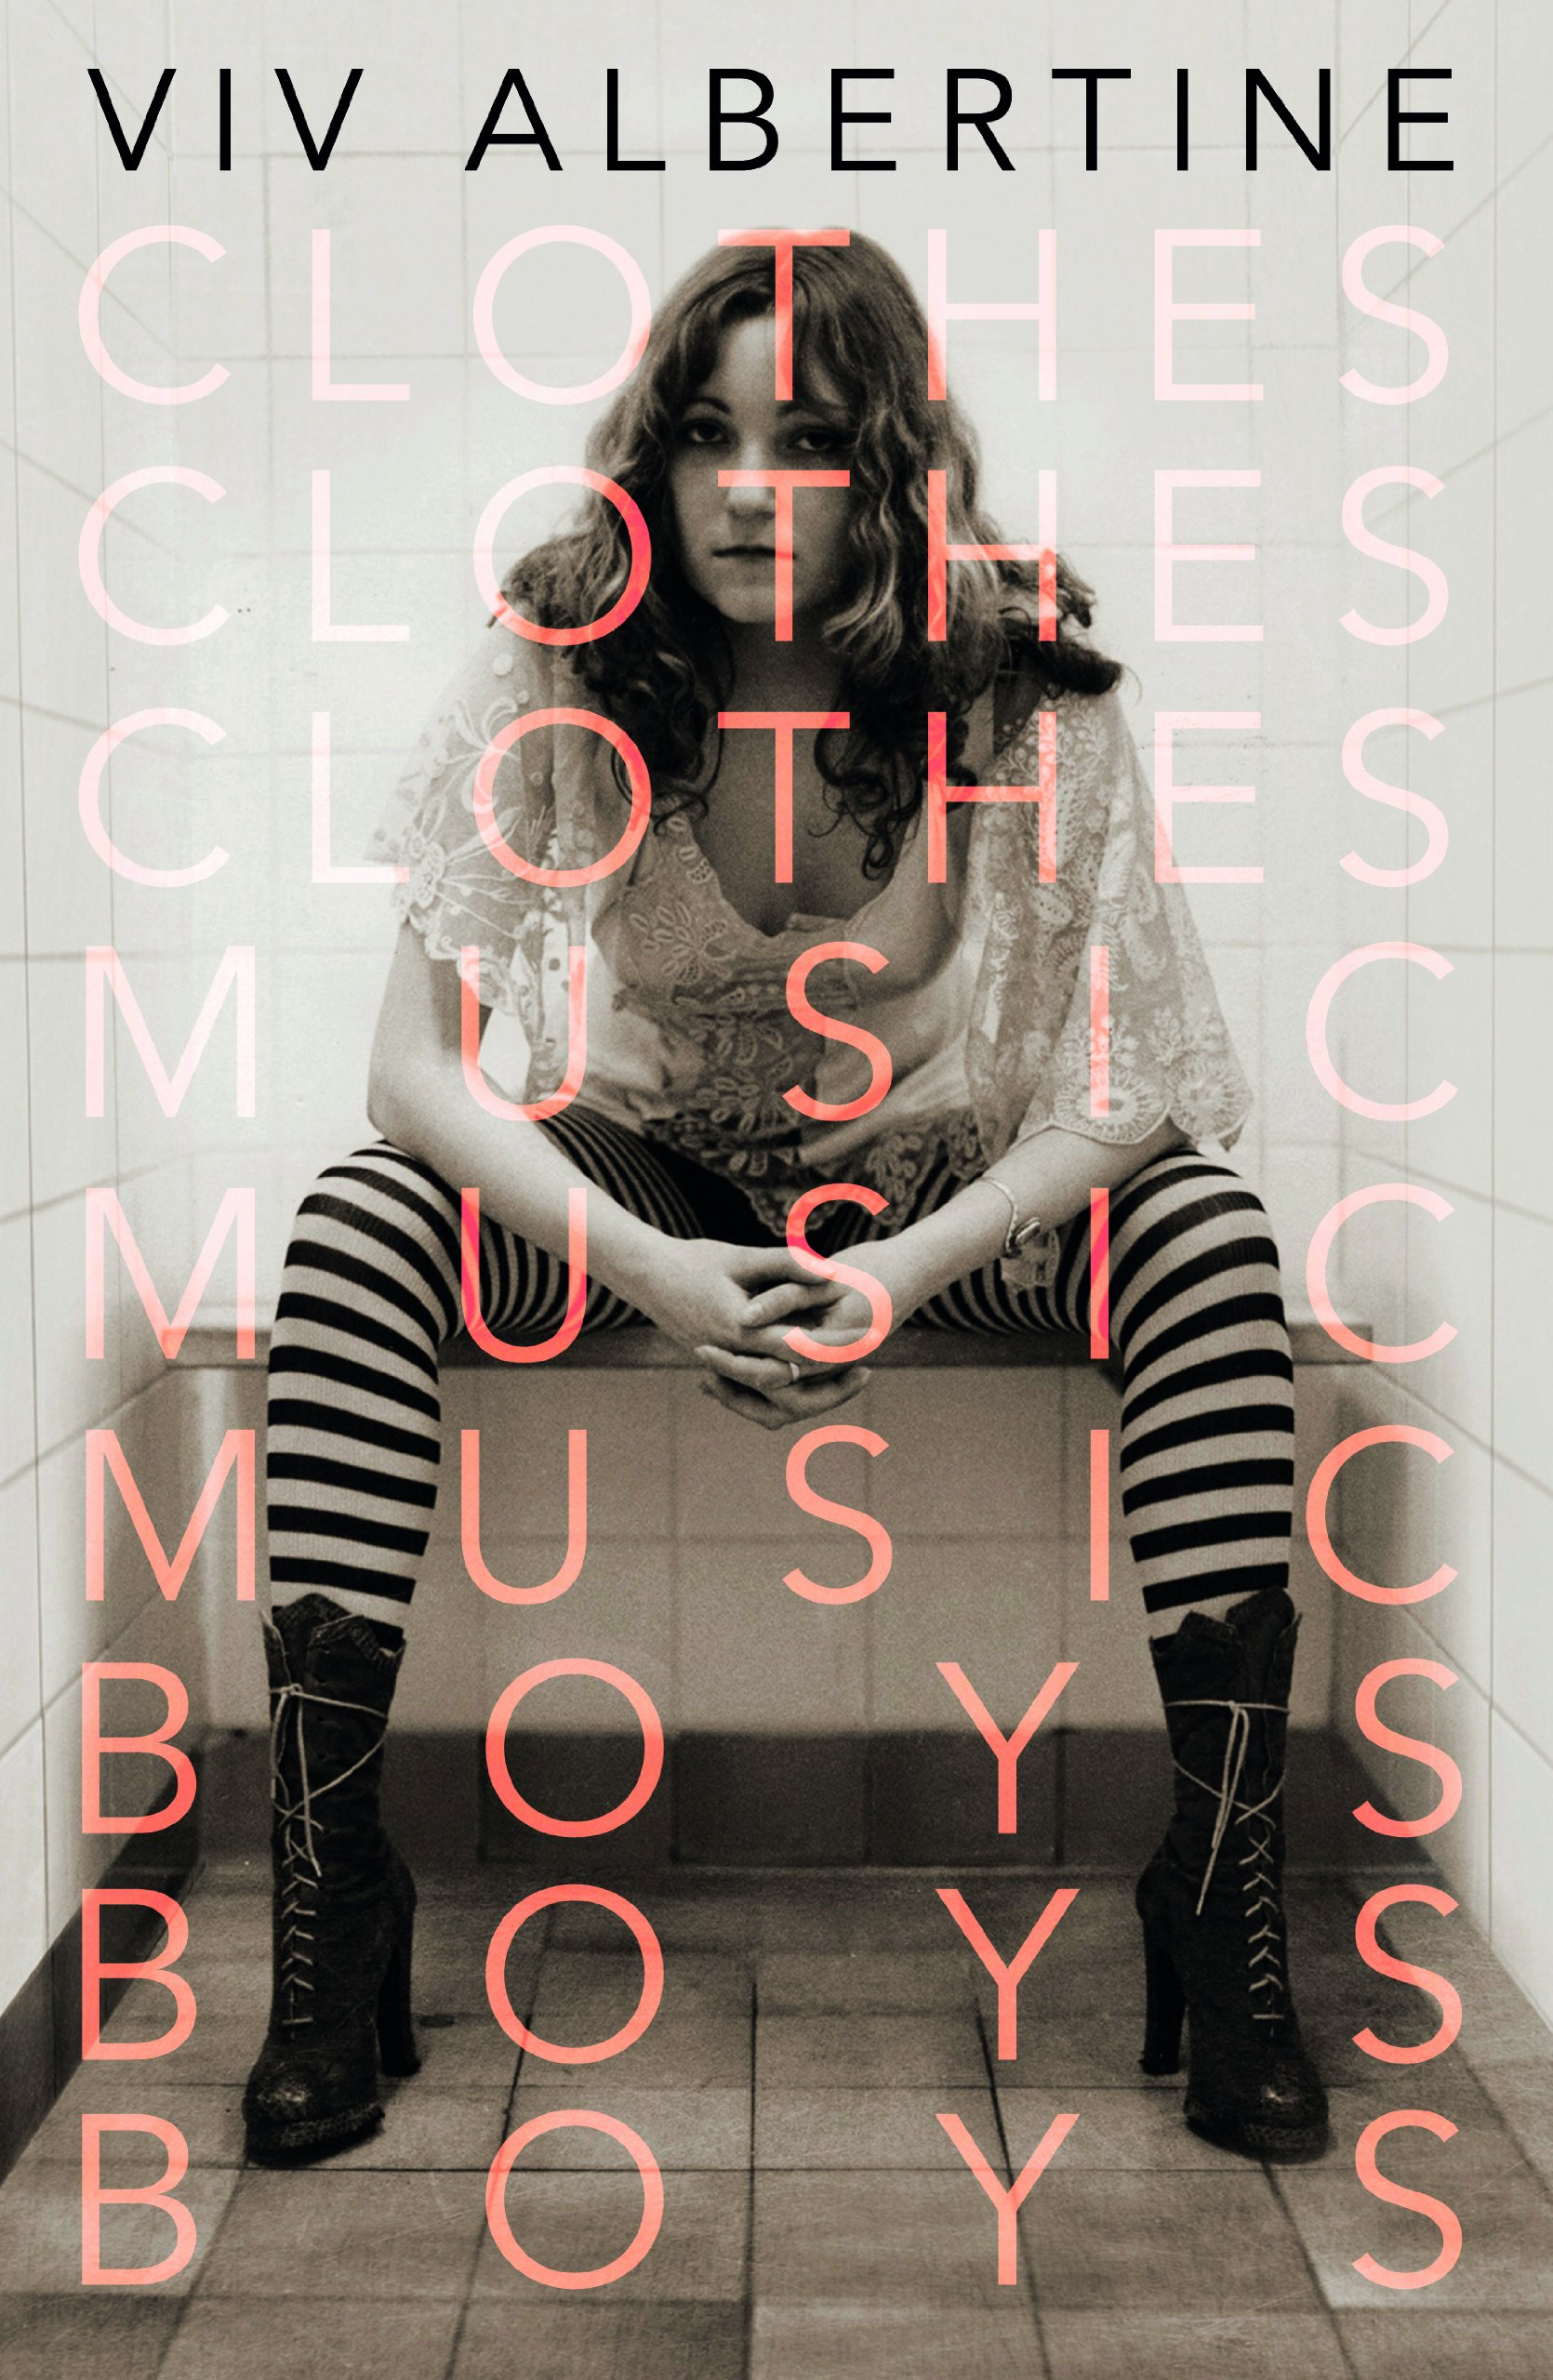 Viv Albertine, Clothes Clothes CLothes Music Music Music Boys Boys Boys, Book, Review, Faber and Faber, Test Pressing, Apiento